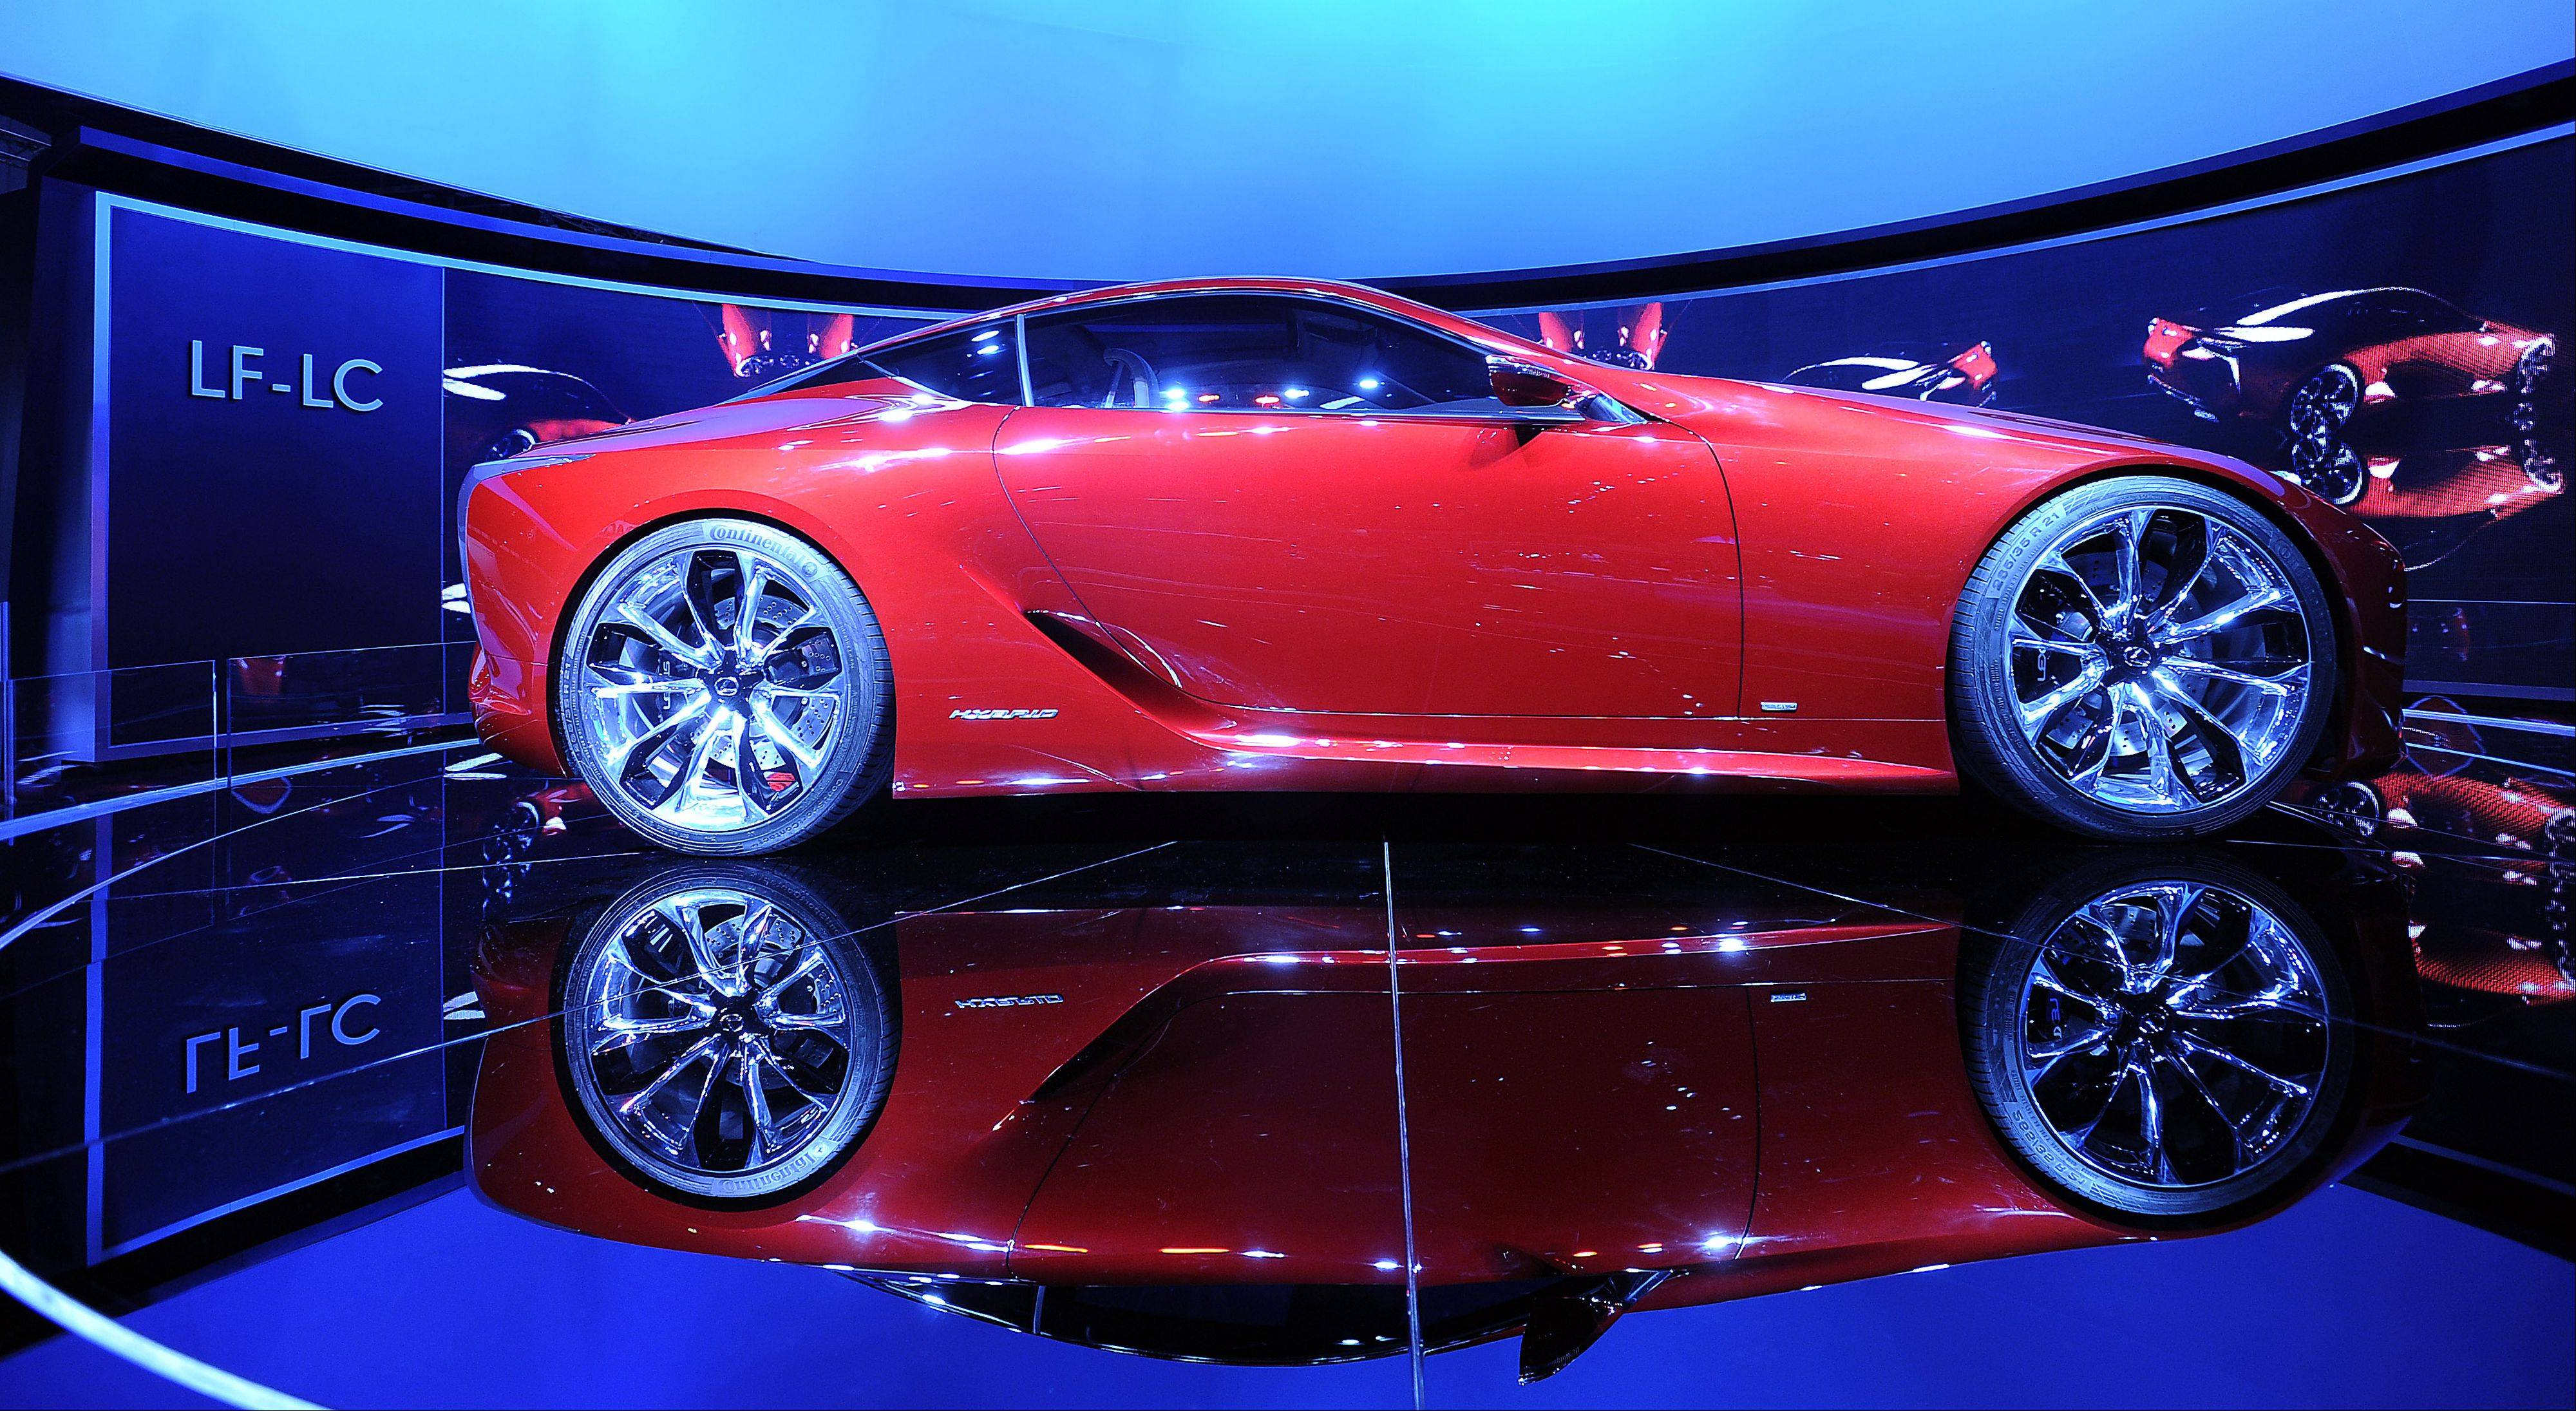 A Lexus hybrid concept car was featured at last year's Chicago Auto Show, which returns to McCormick Place in Chicago for its 105th edition.